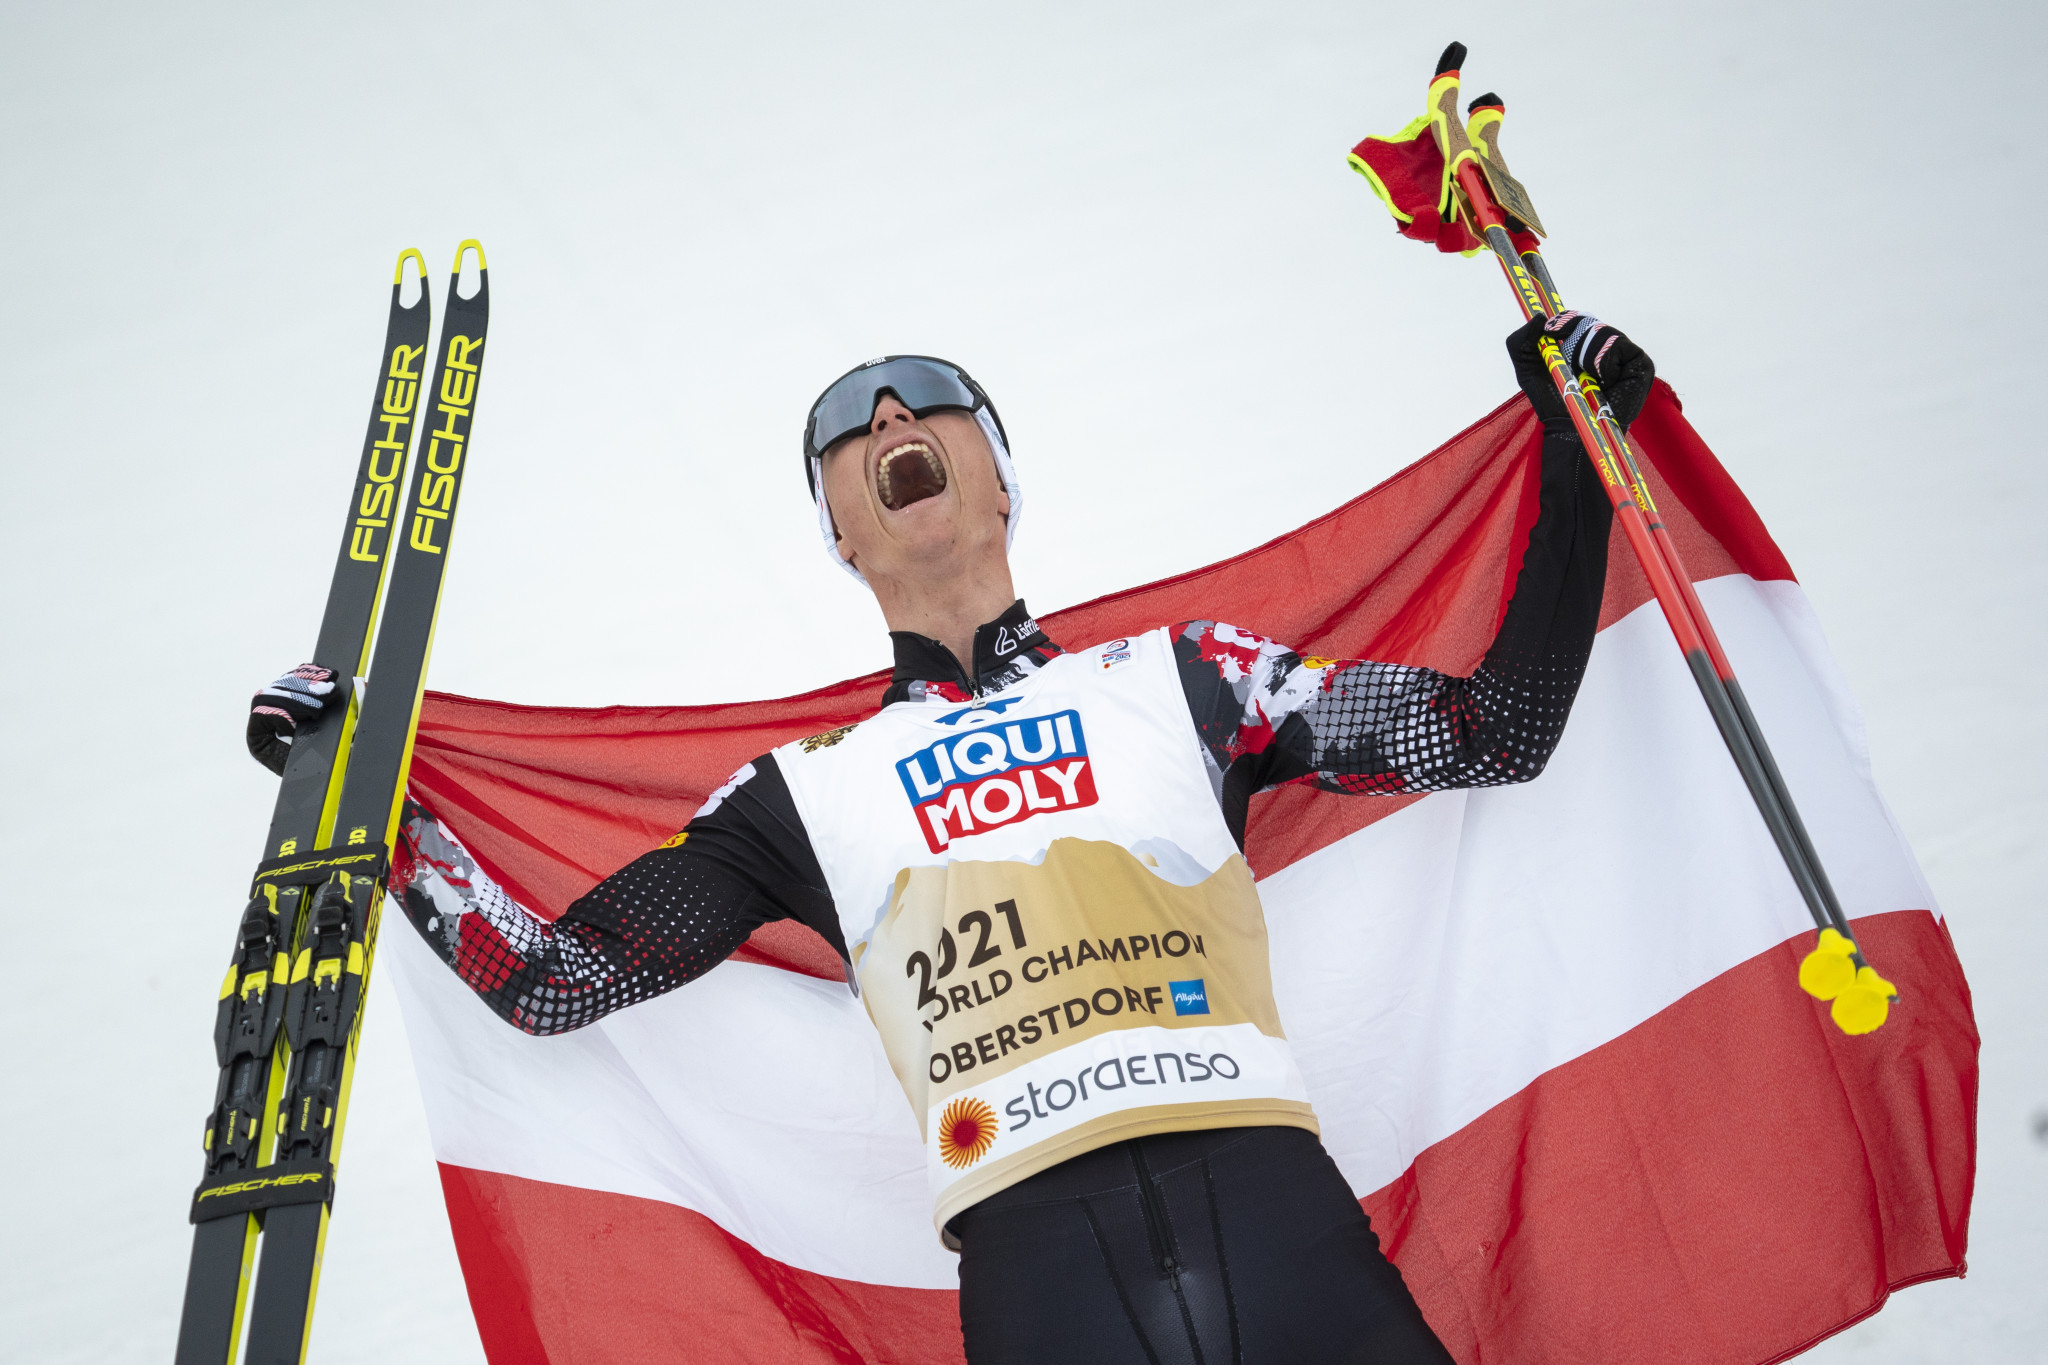 Lamparter claims stunning Nordic combined gold at Nordic World Ski Championships